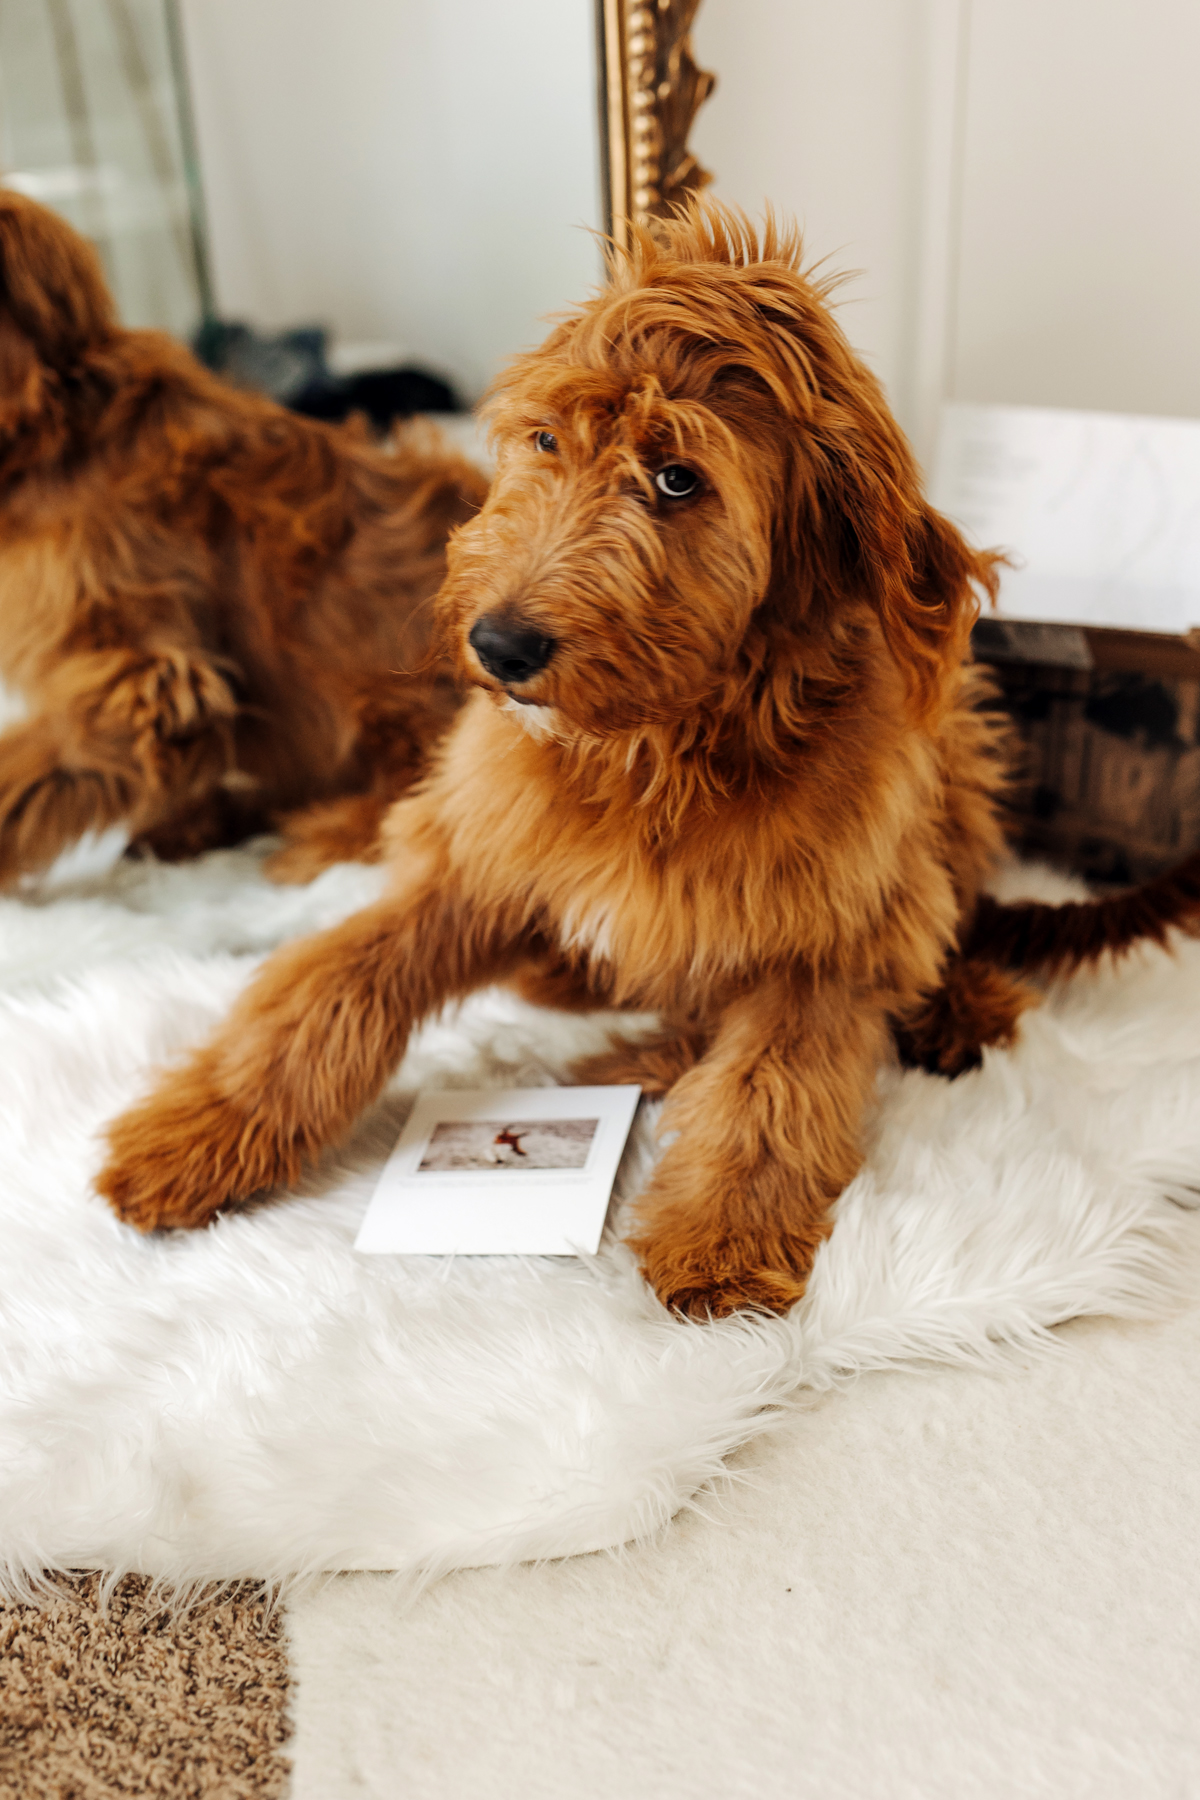 Fashion Jackson Minted Save the Dates and Bear the Golden Doodle